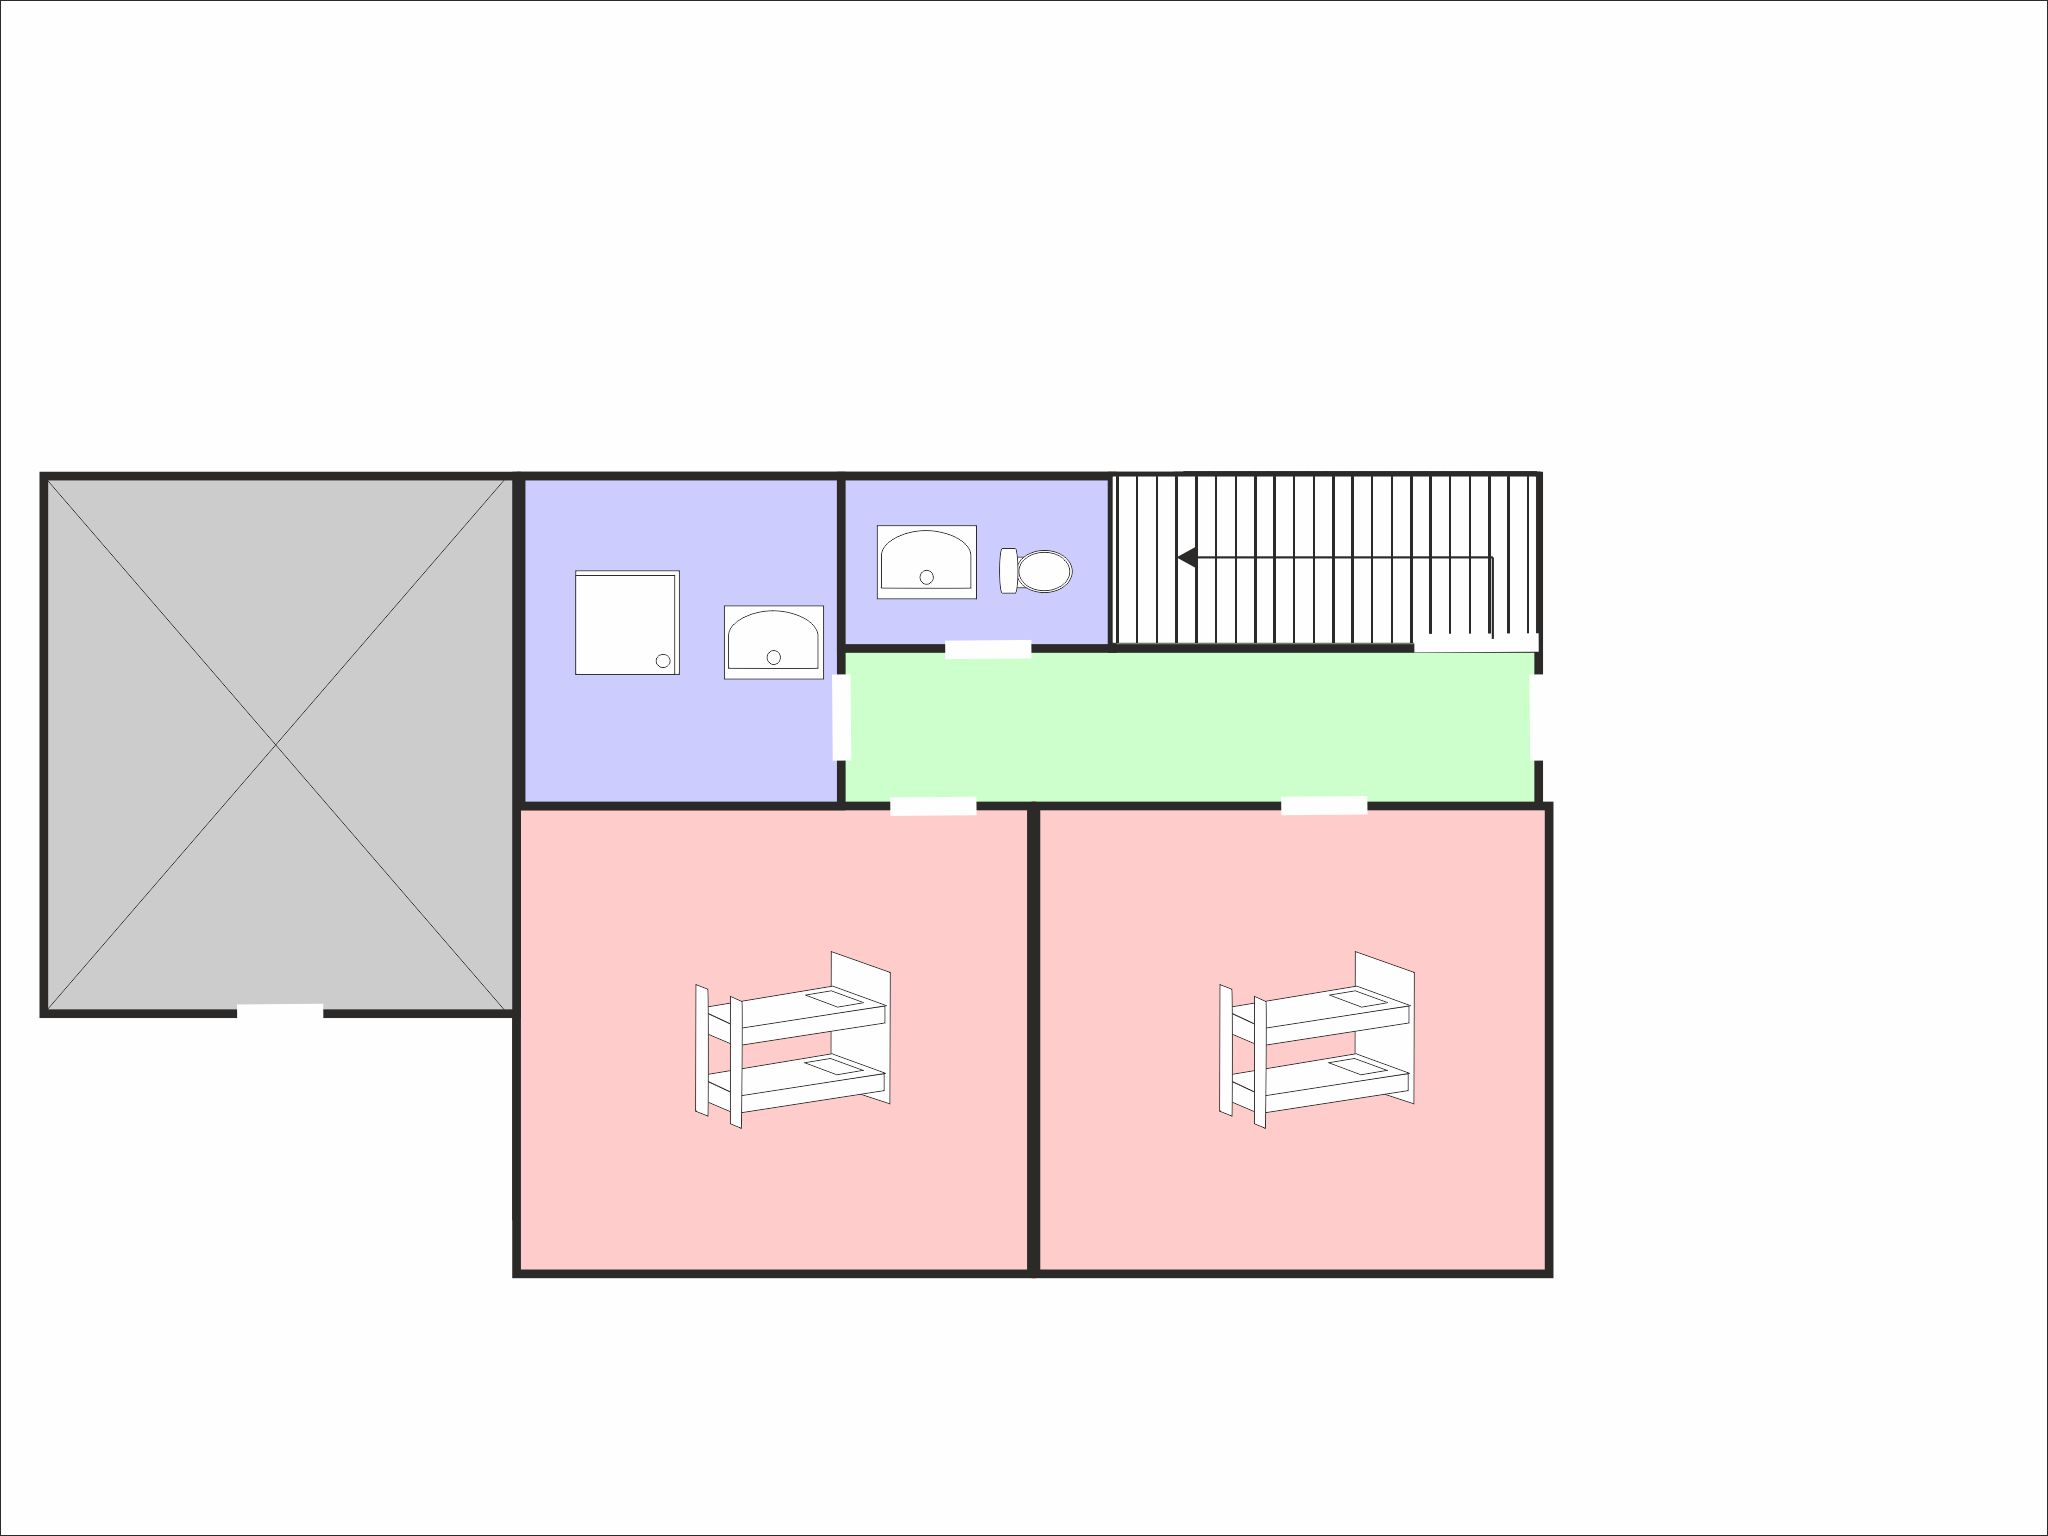 Chalet Barbara - floor plan - level 1